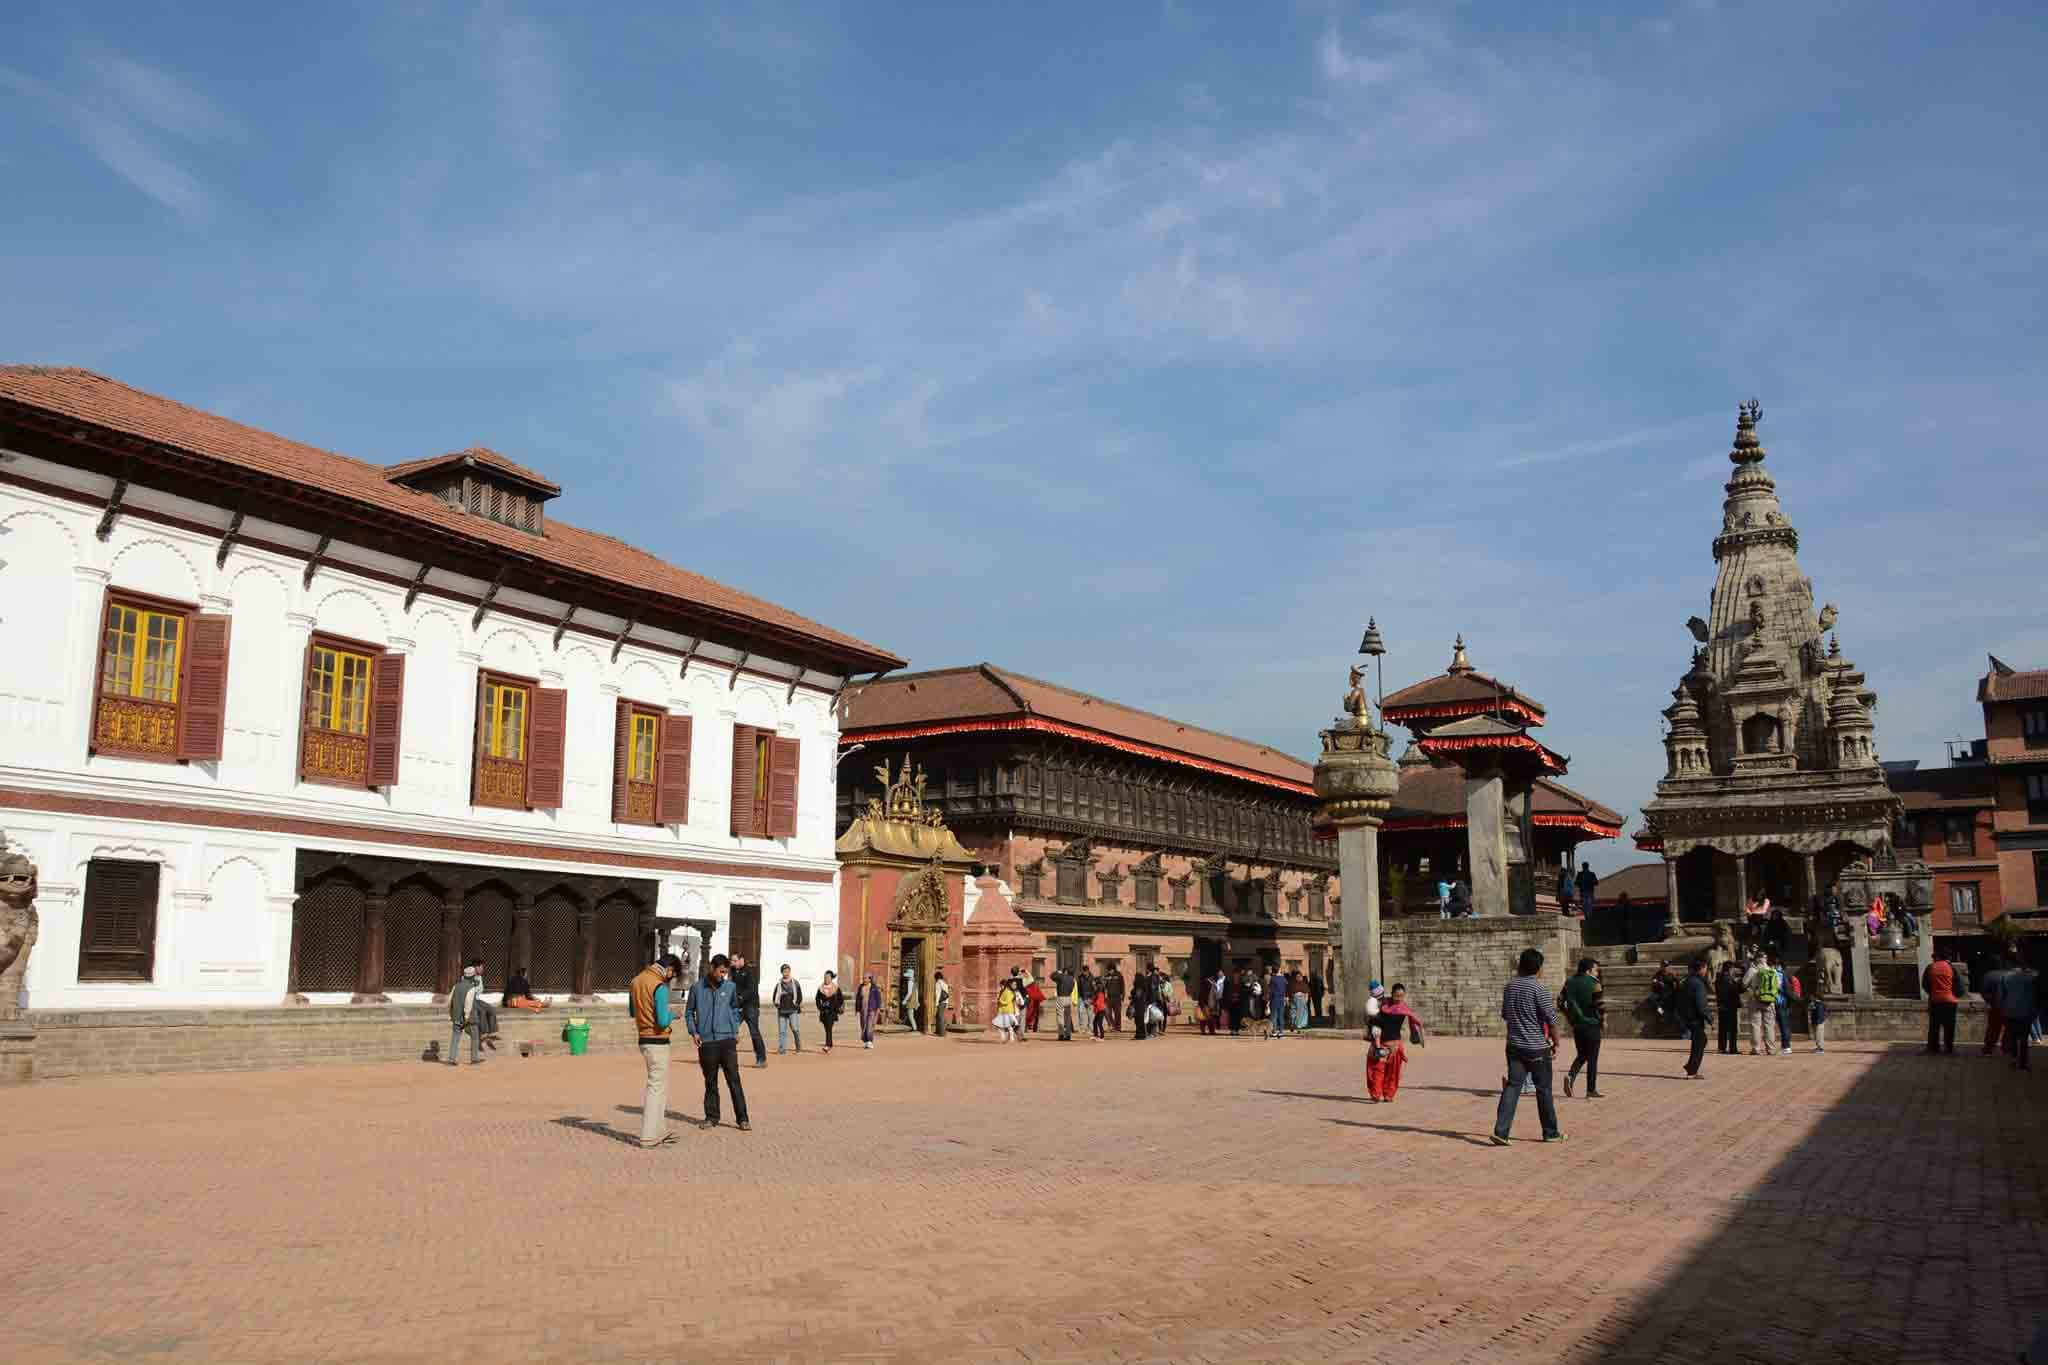 Bhaktapur durbar square - Best dating spot in Kathmandu